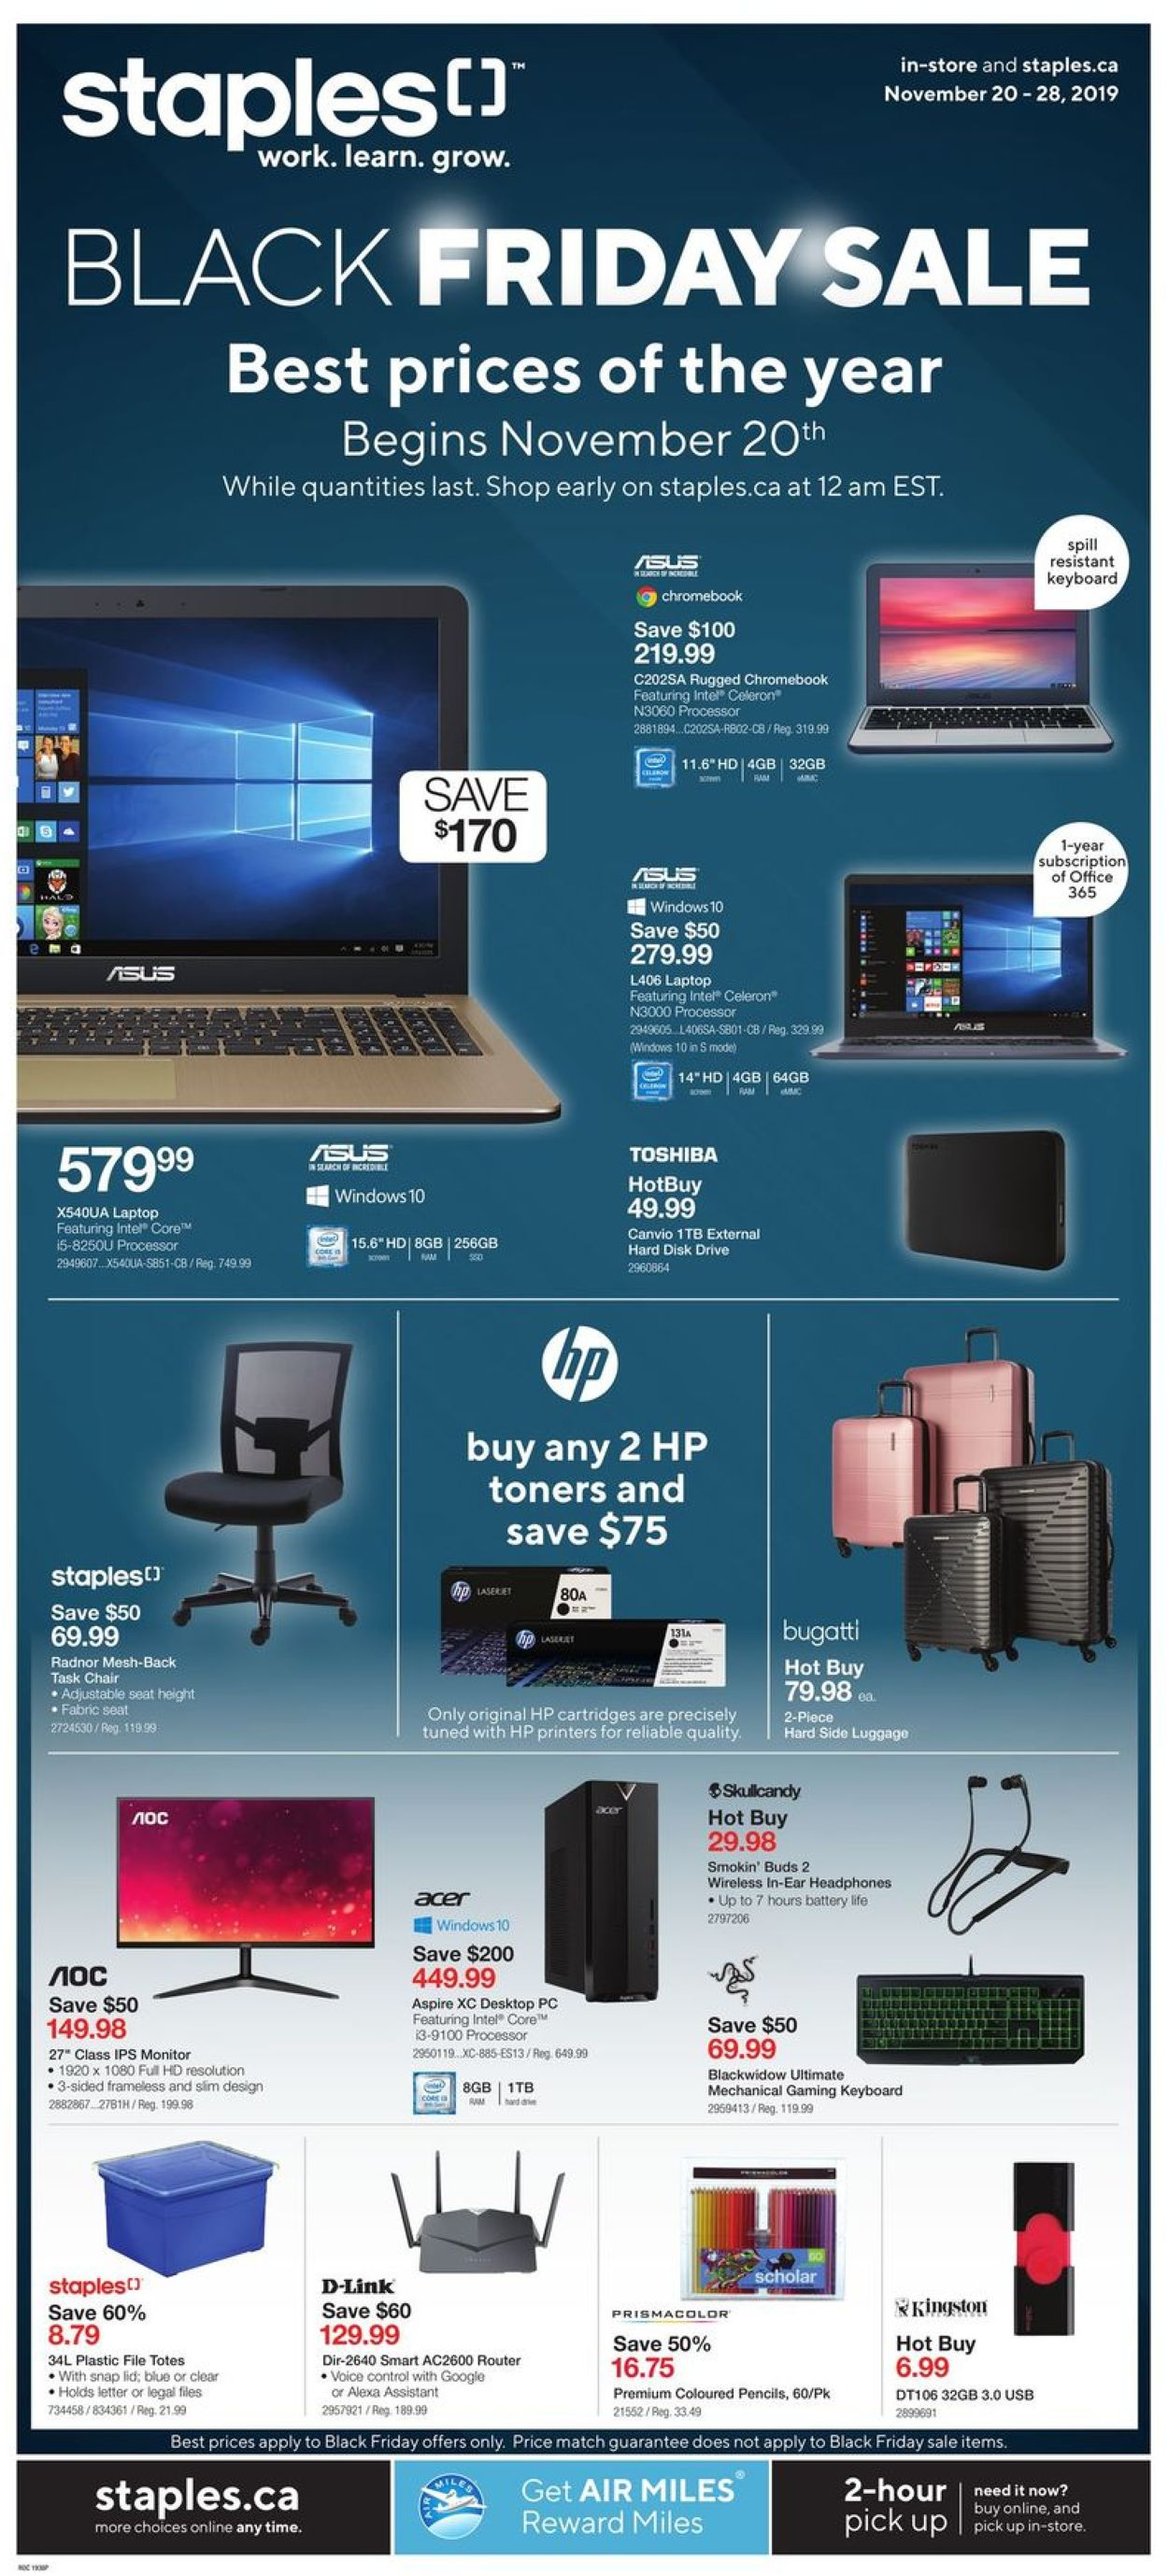 Staples BLACK FRIDAY SALE 2019 Flyer - 11/20-11/28/2019